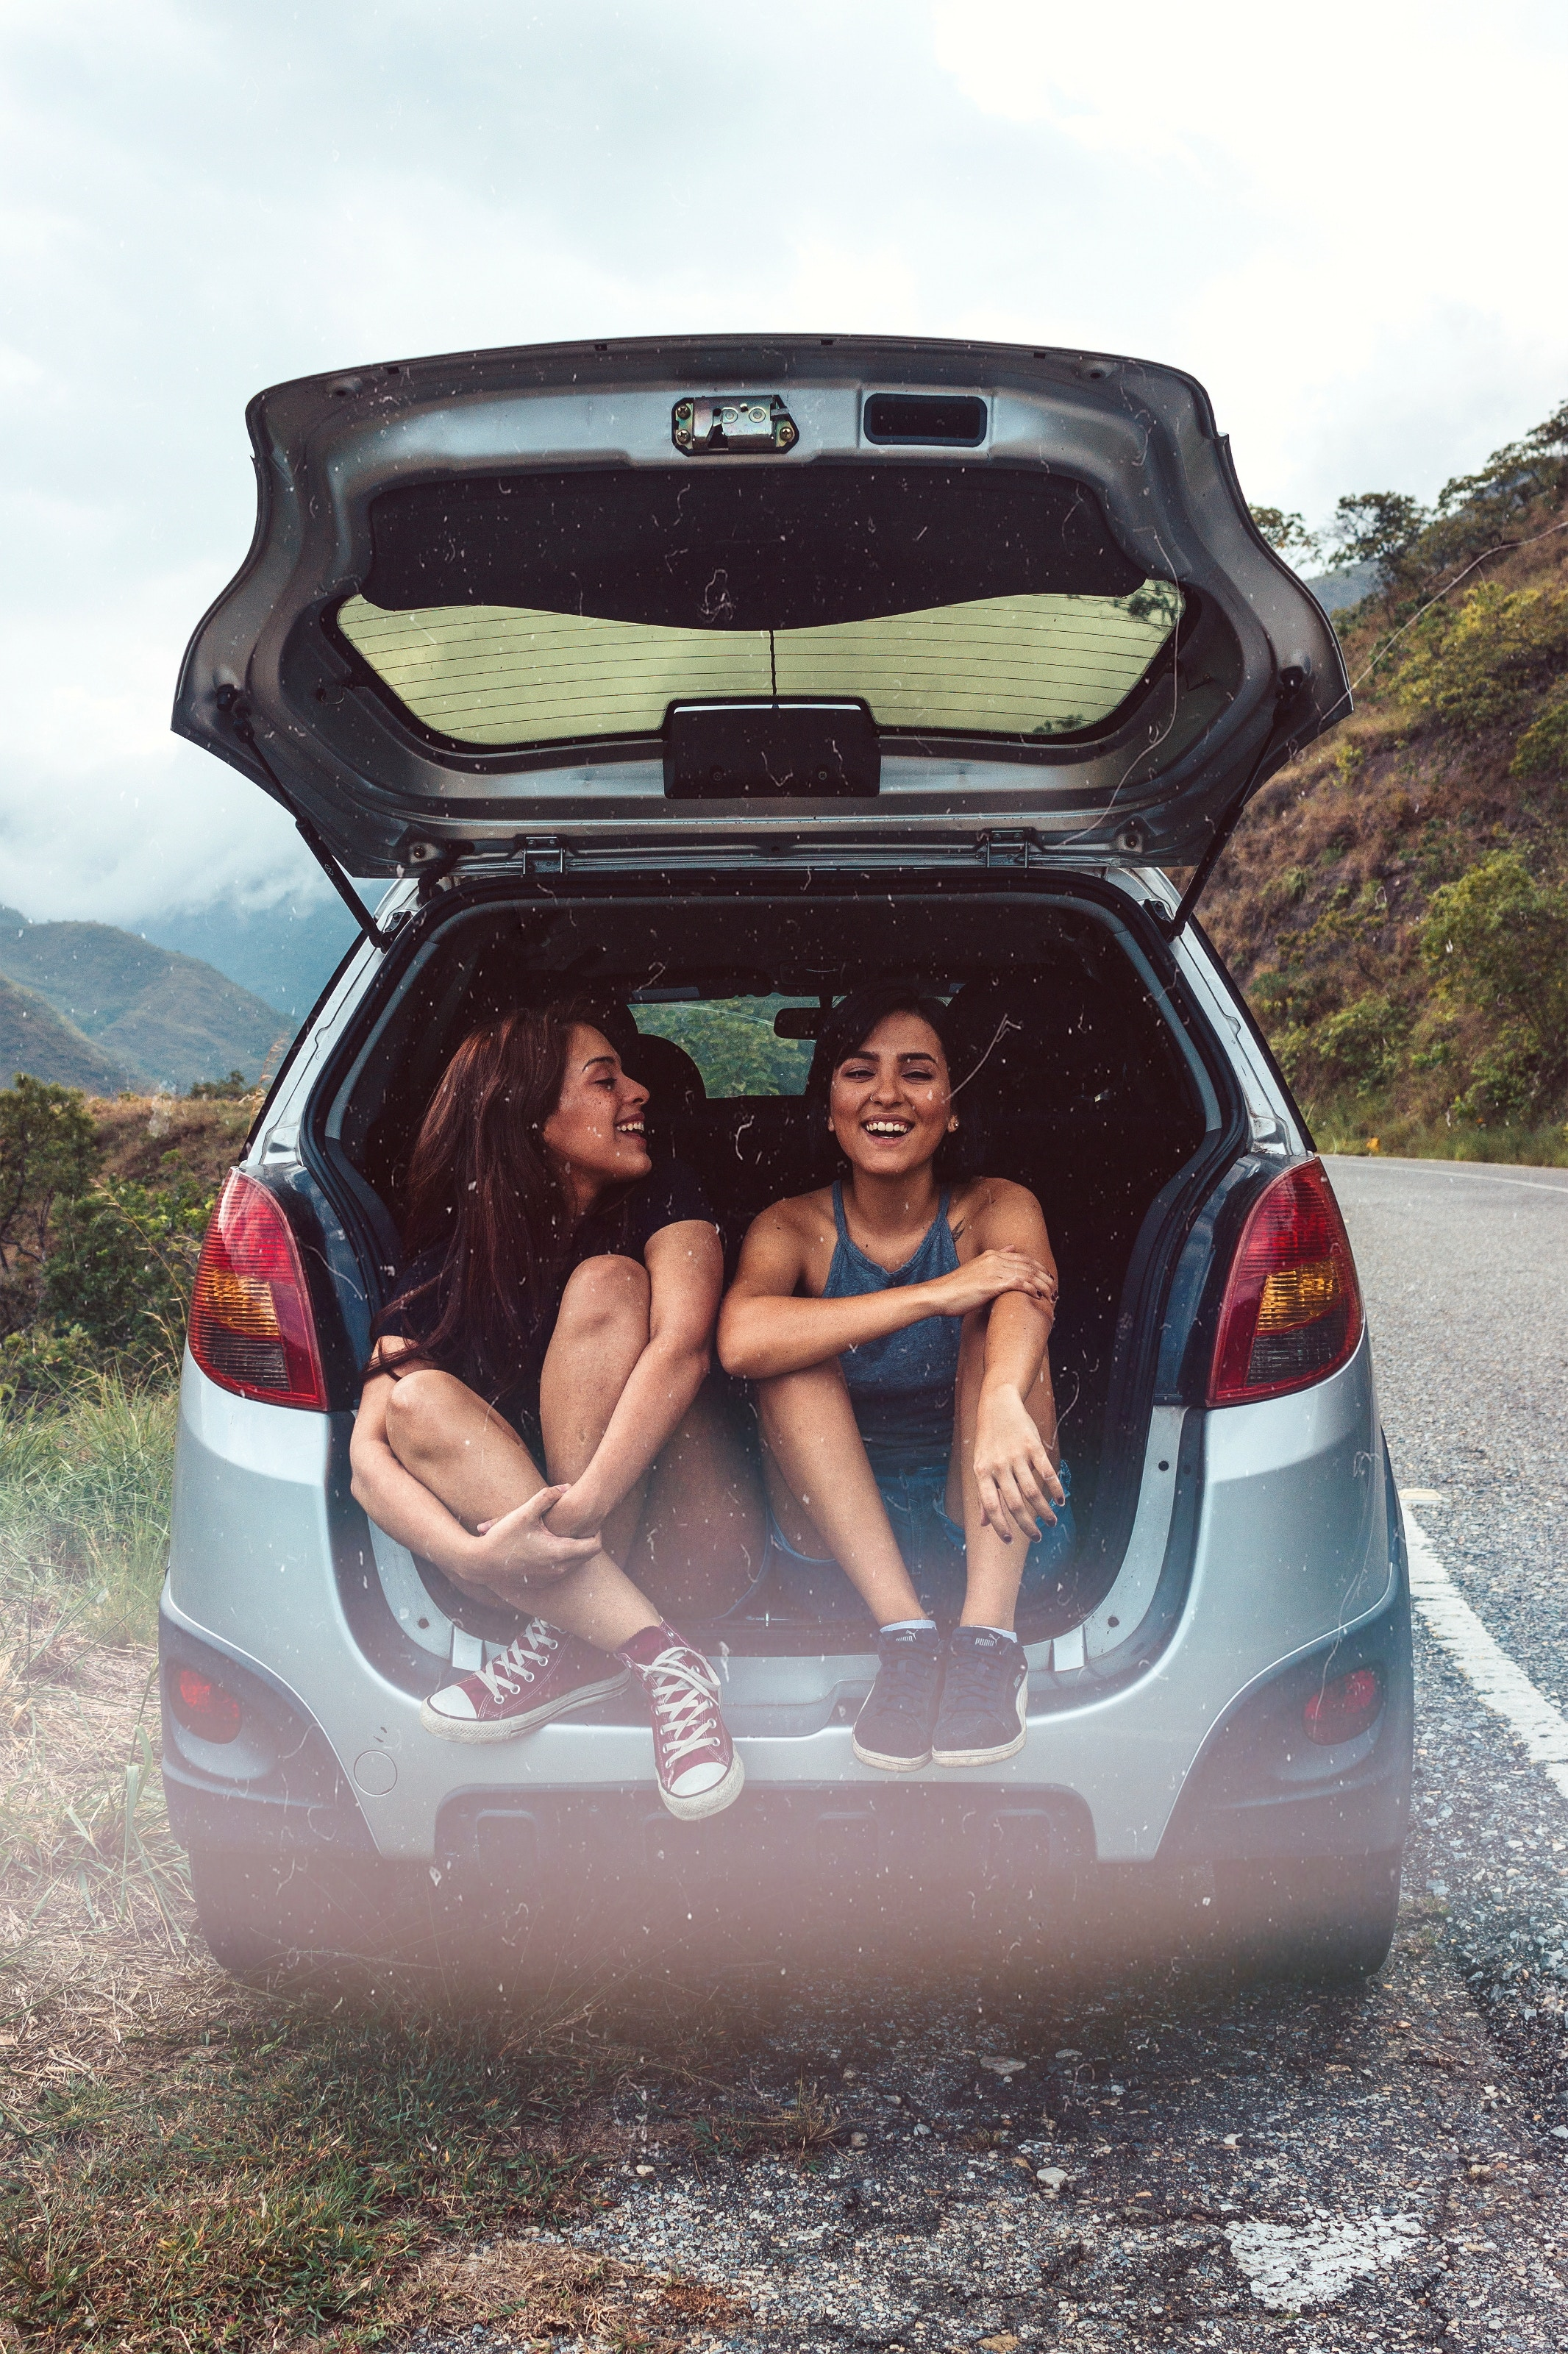 NationwideWarranty and Roadside Assistance  Program - Drive away with confidence and a complimentary nationwide written 36 month or 36,000 mile warranty so you never have to be out of pocket twice for the same repair.